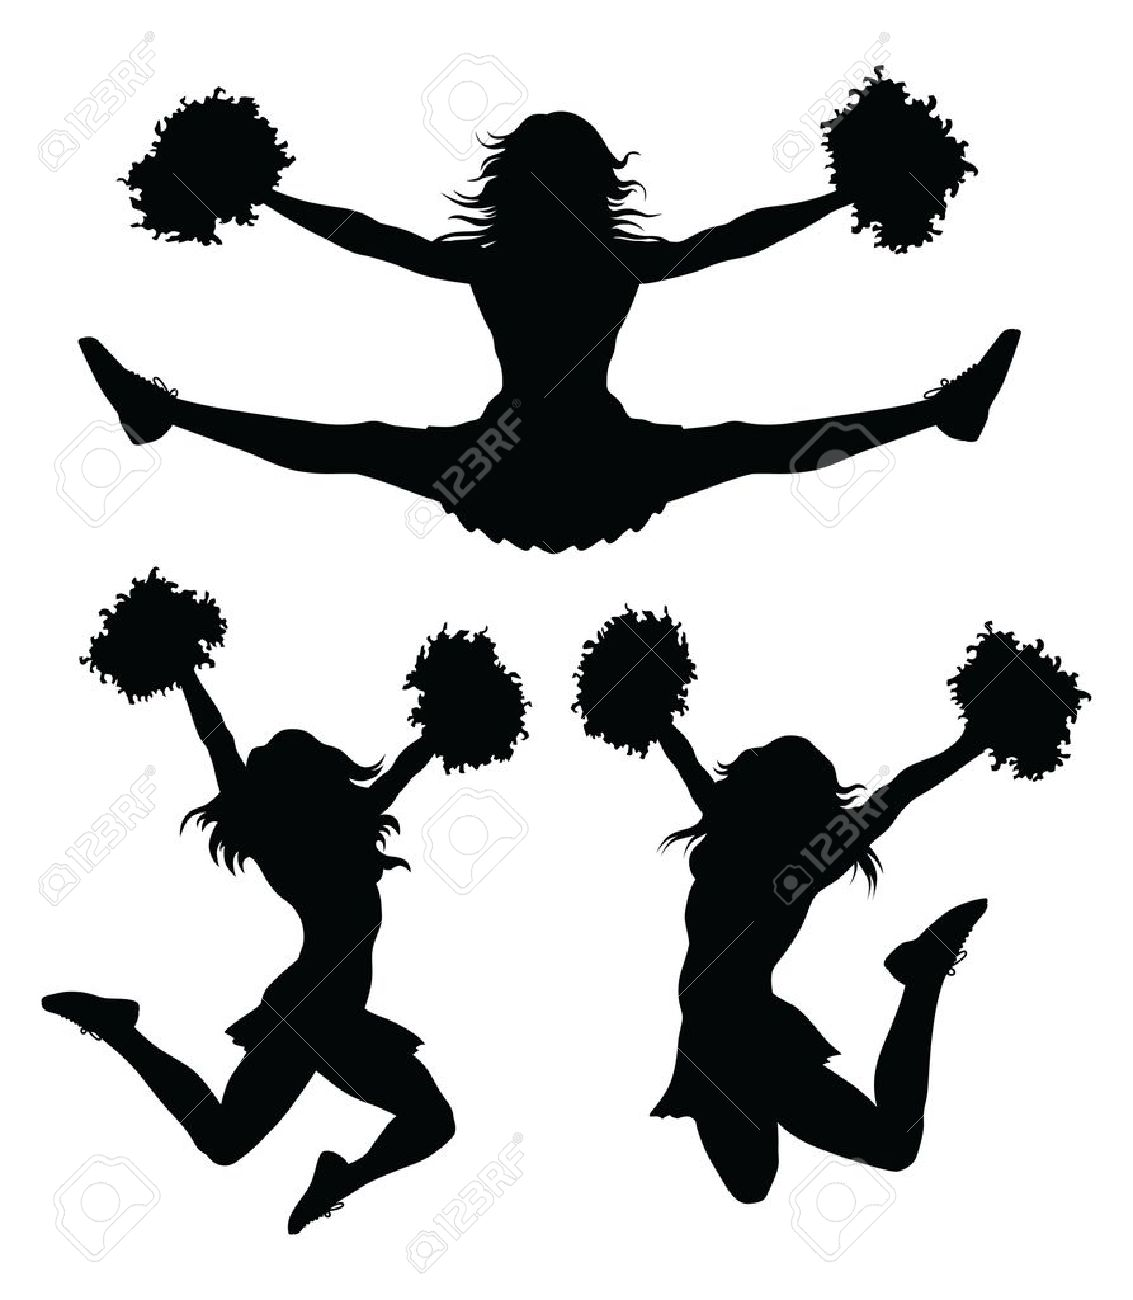 Cheerleading clipart black and white. Cheer silhouette at getdrawings